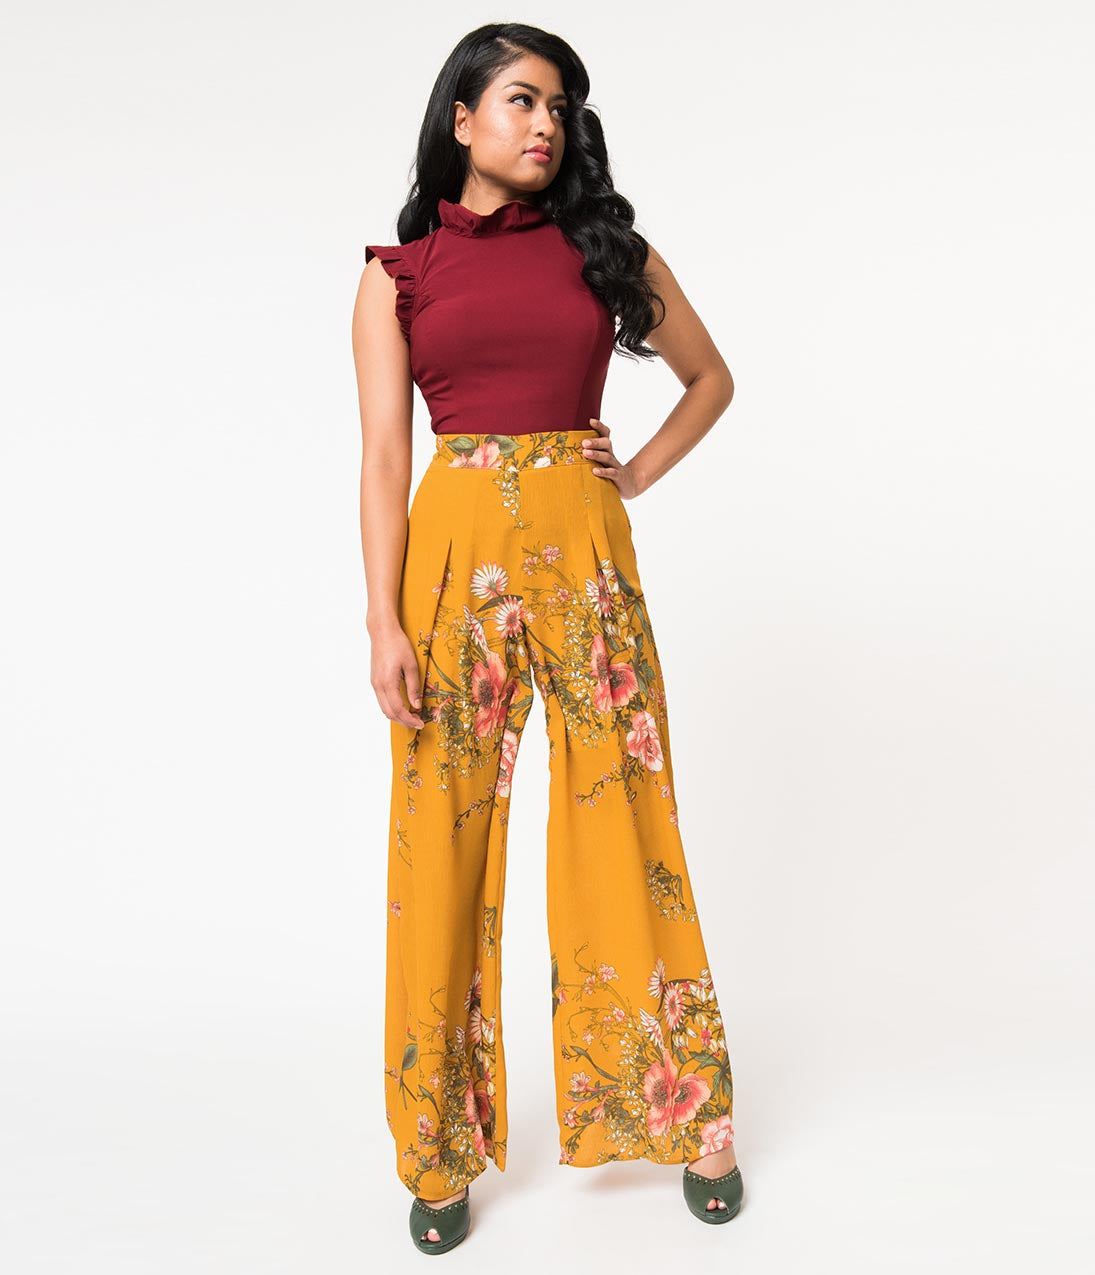 Vintage High Waisted Trousers, Sailor Pants, Jeans Mustard Yellow  Pink Floral Print High Rise Palazzo Pants $46.00 AT vintagedancer.com